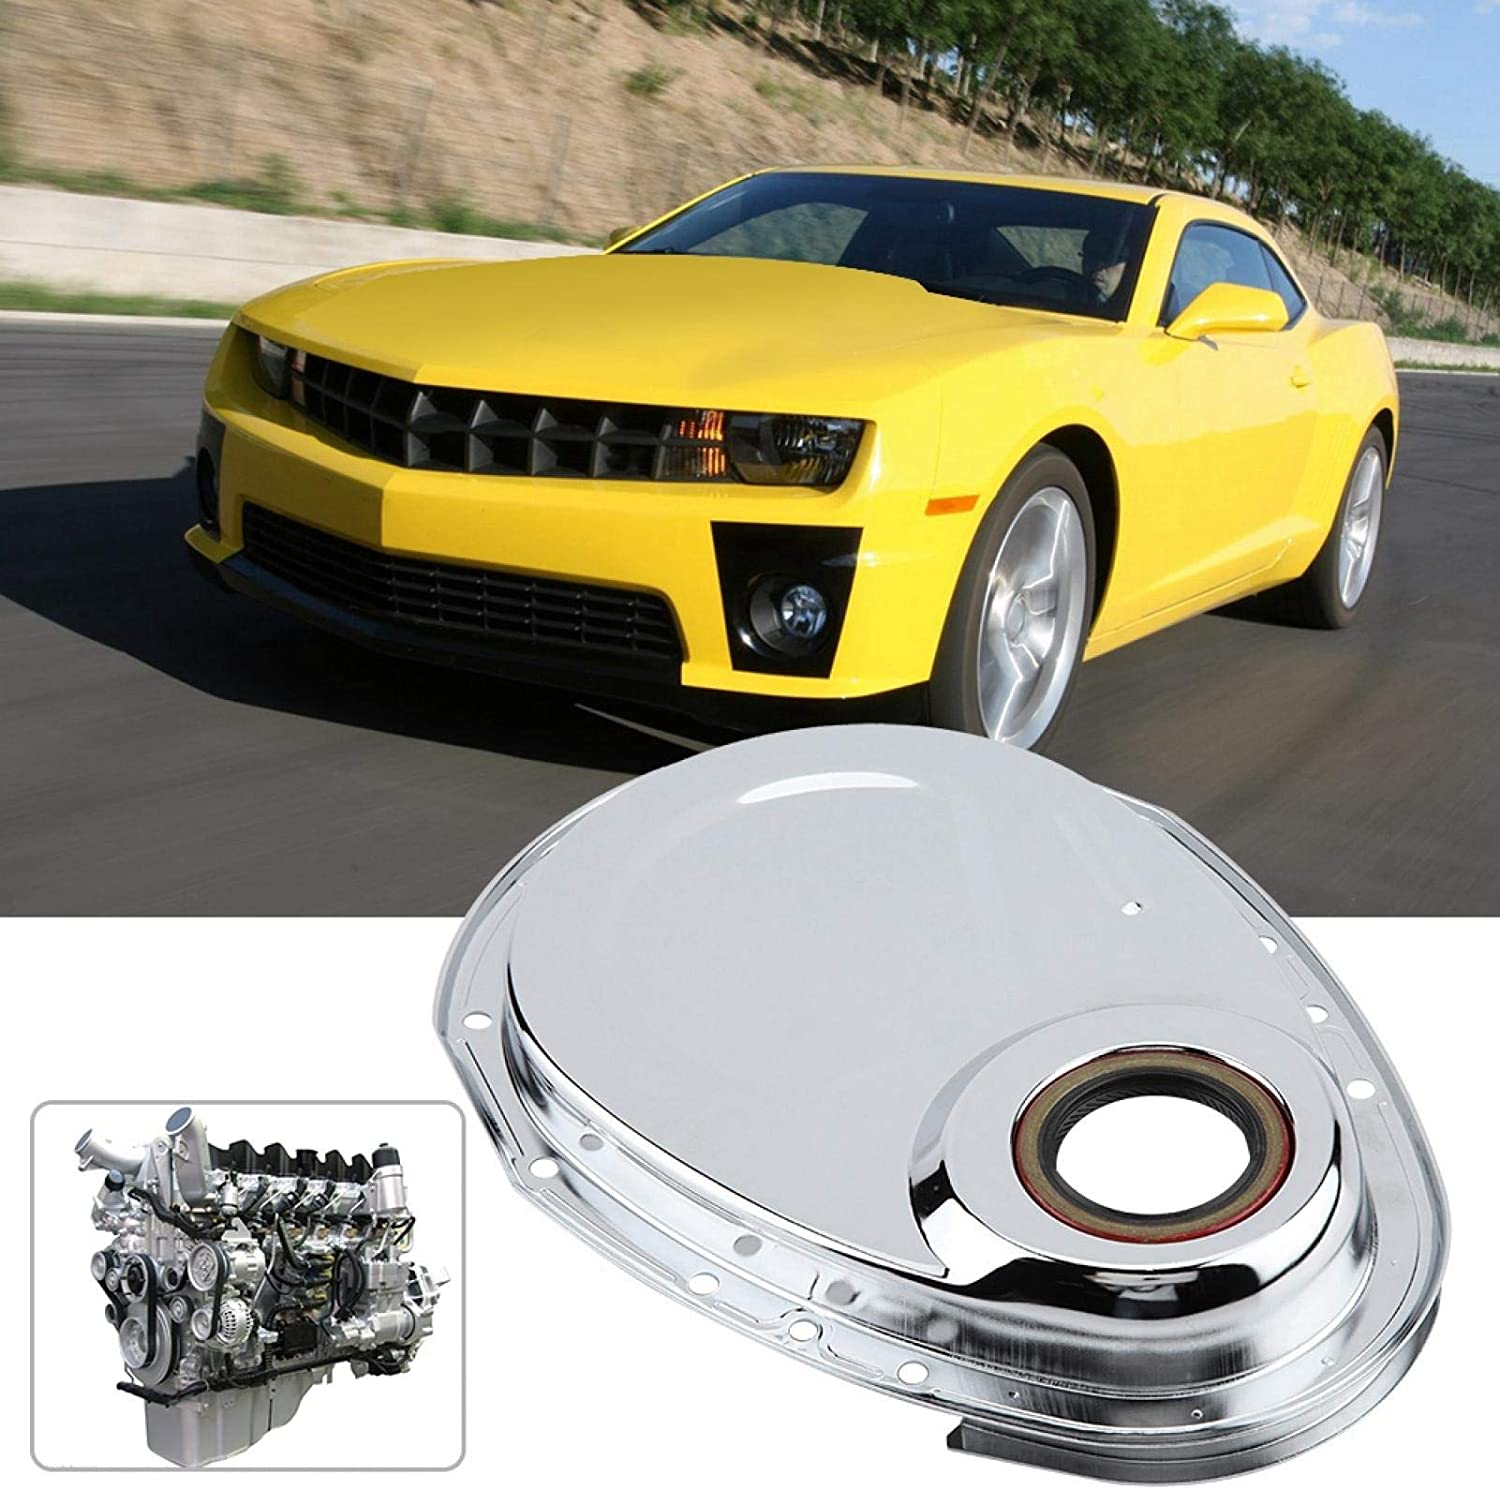 Rigid Pratical Car Repair Car Parts for 283 327 305 350 383 400 Engines Auto Parts Timing Chain Cover Kit Timing Chain Cover Gasket Kit